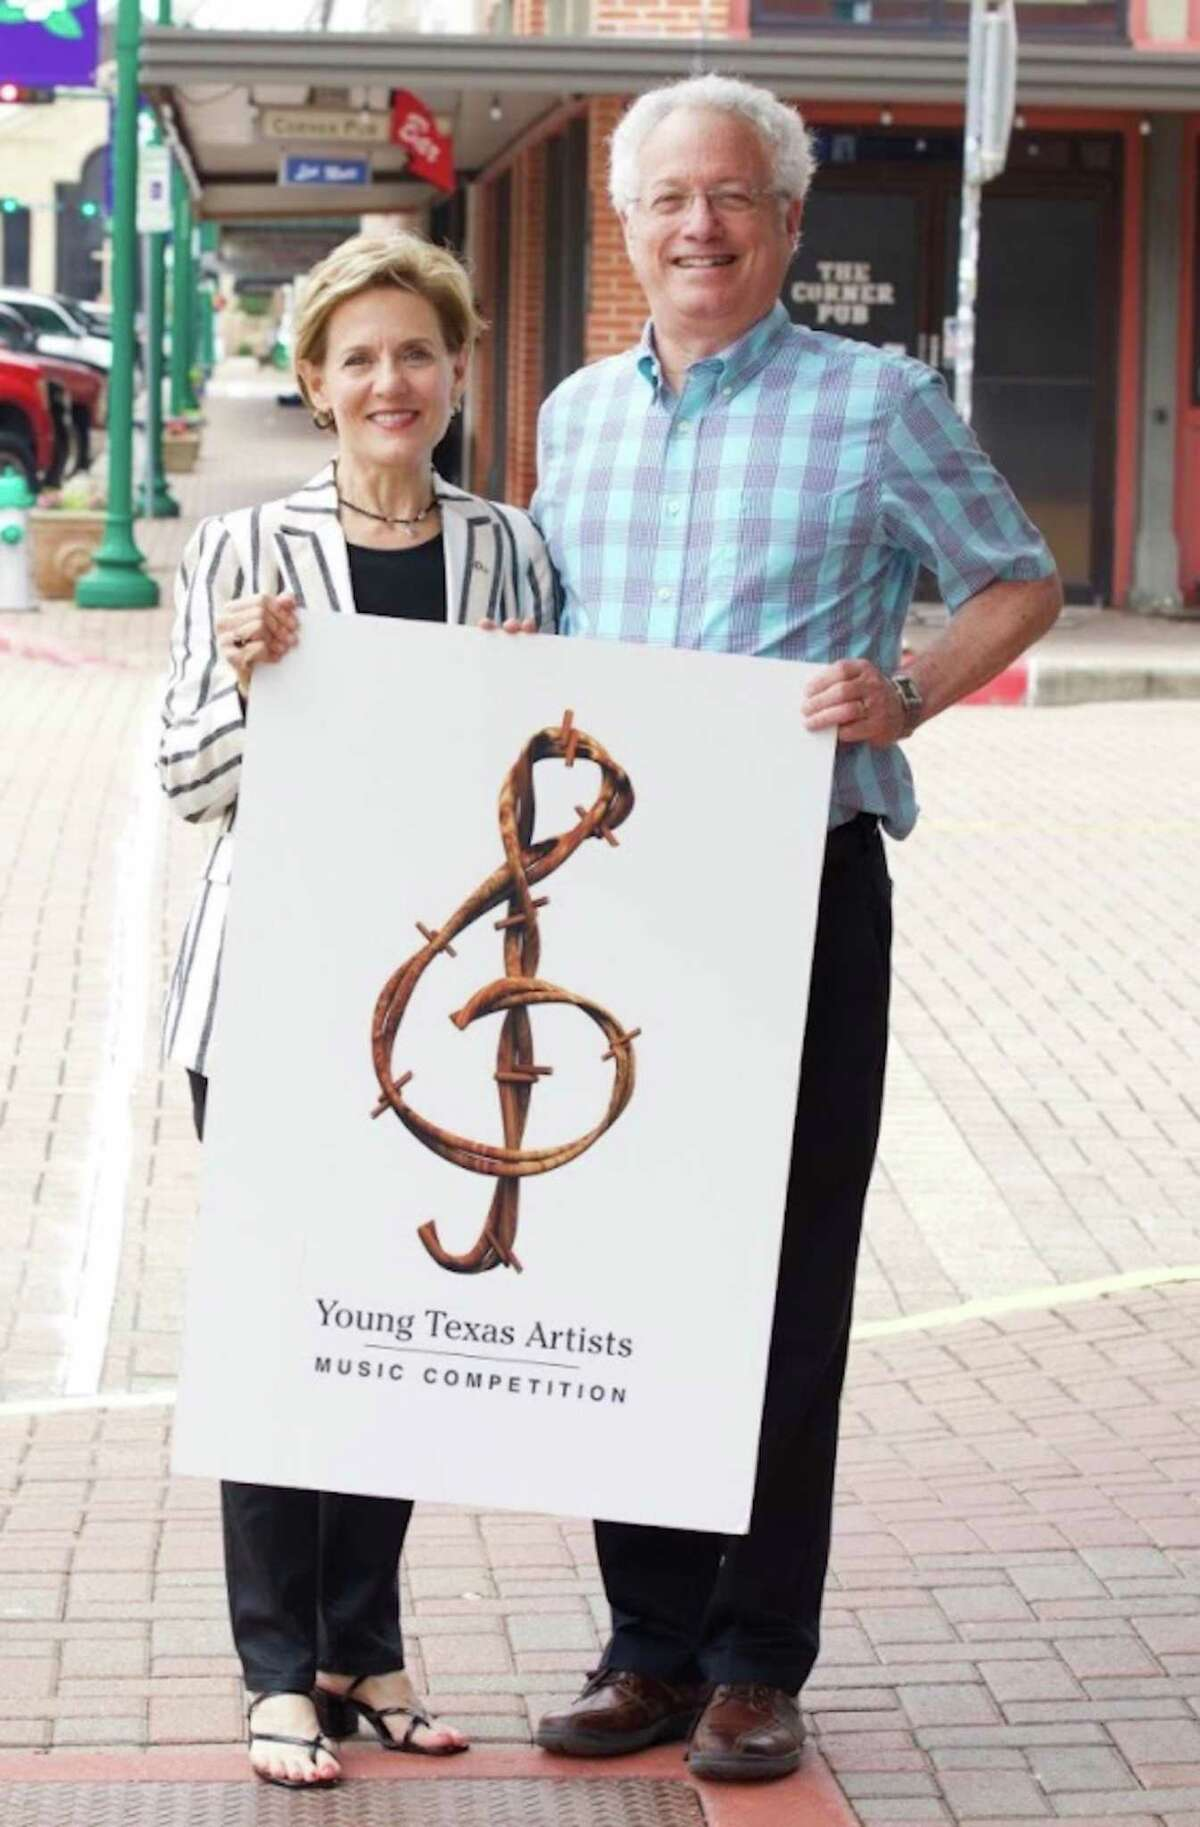 Susie Moore Pokorski, President/CEO of Young Texas Artists (YTA), and Leland Dushkin, Treasurer, jubilant after YTA met its $50,000 Matching Grant Challenge.